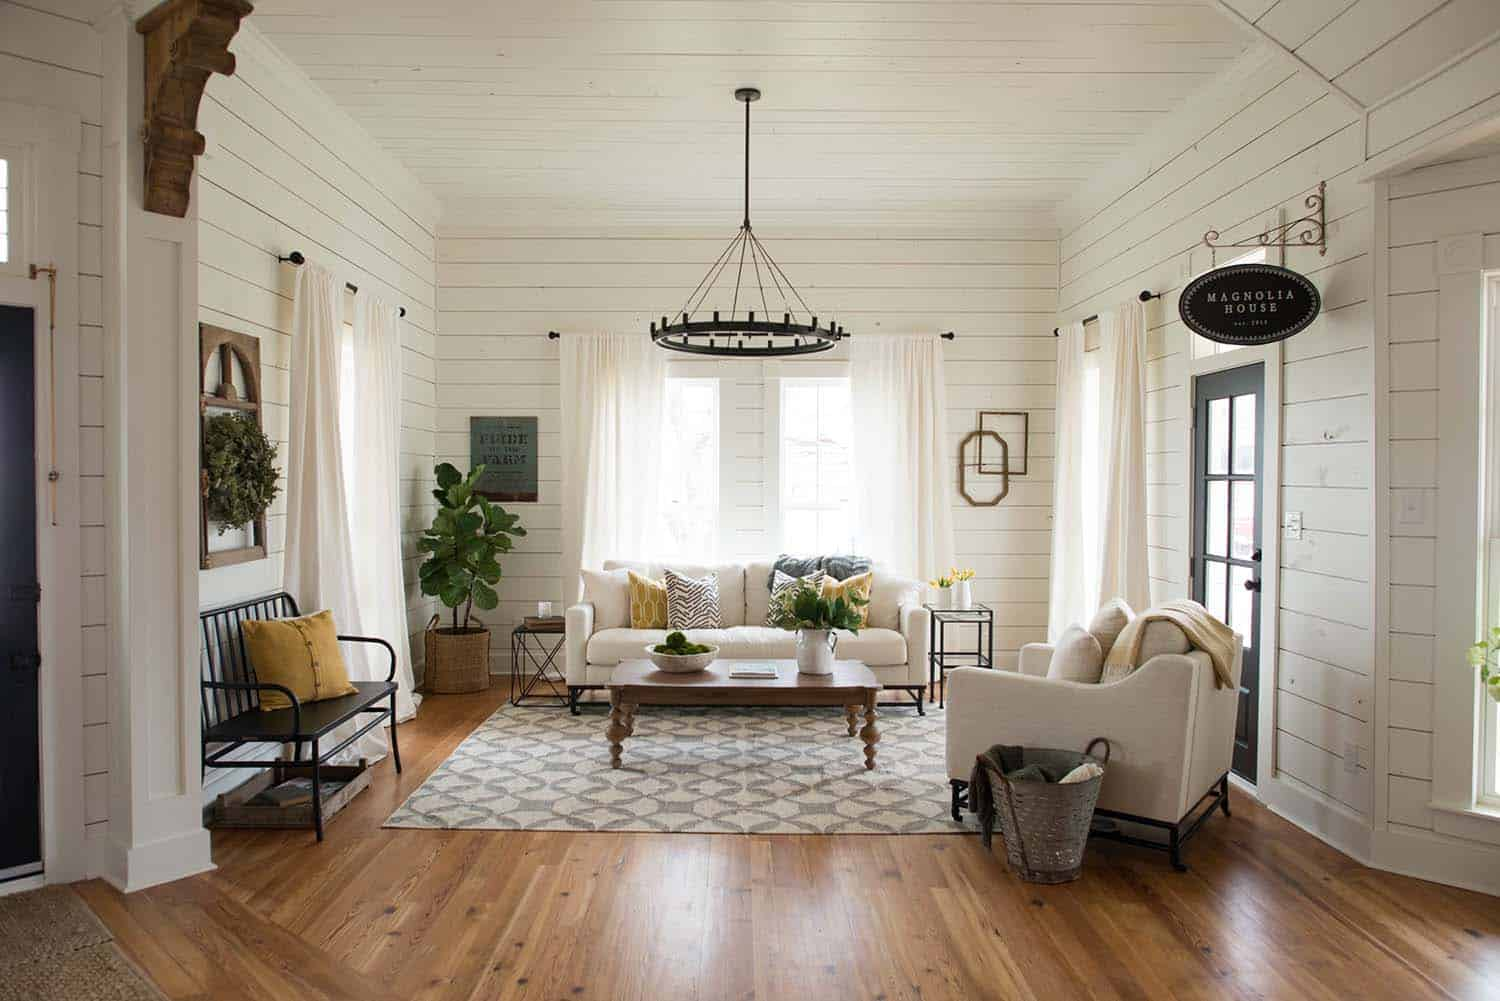 Shiplap Wall Ideas Home-37-1 Kindesign